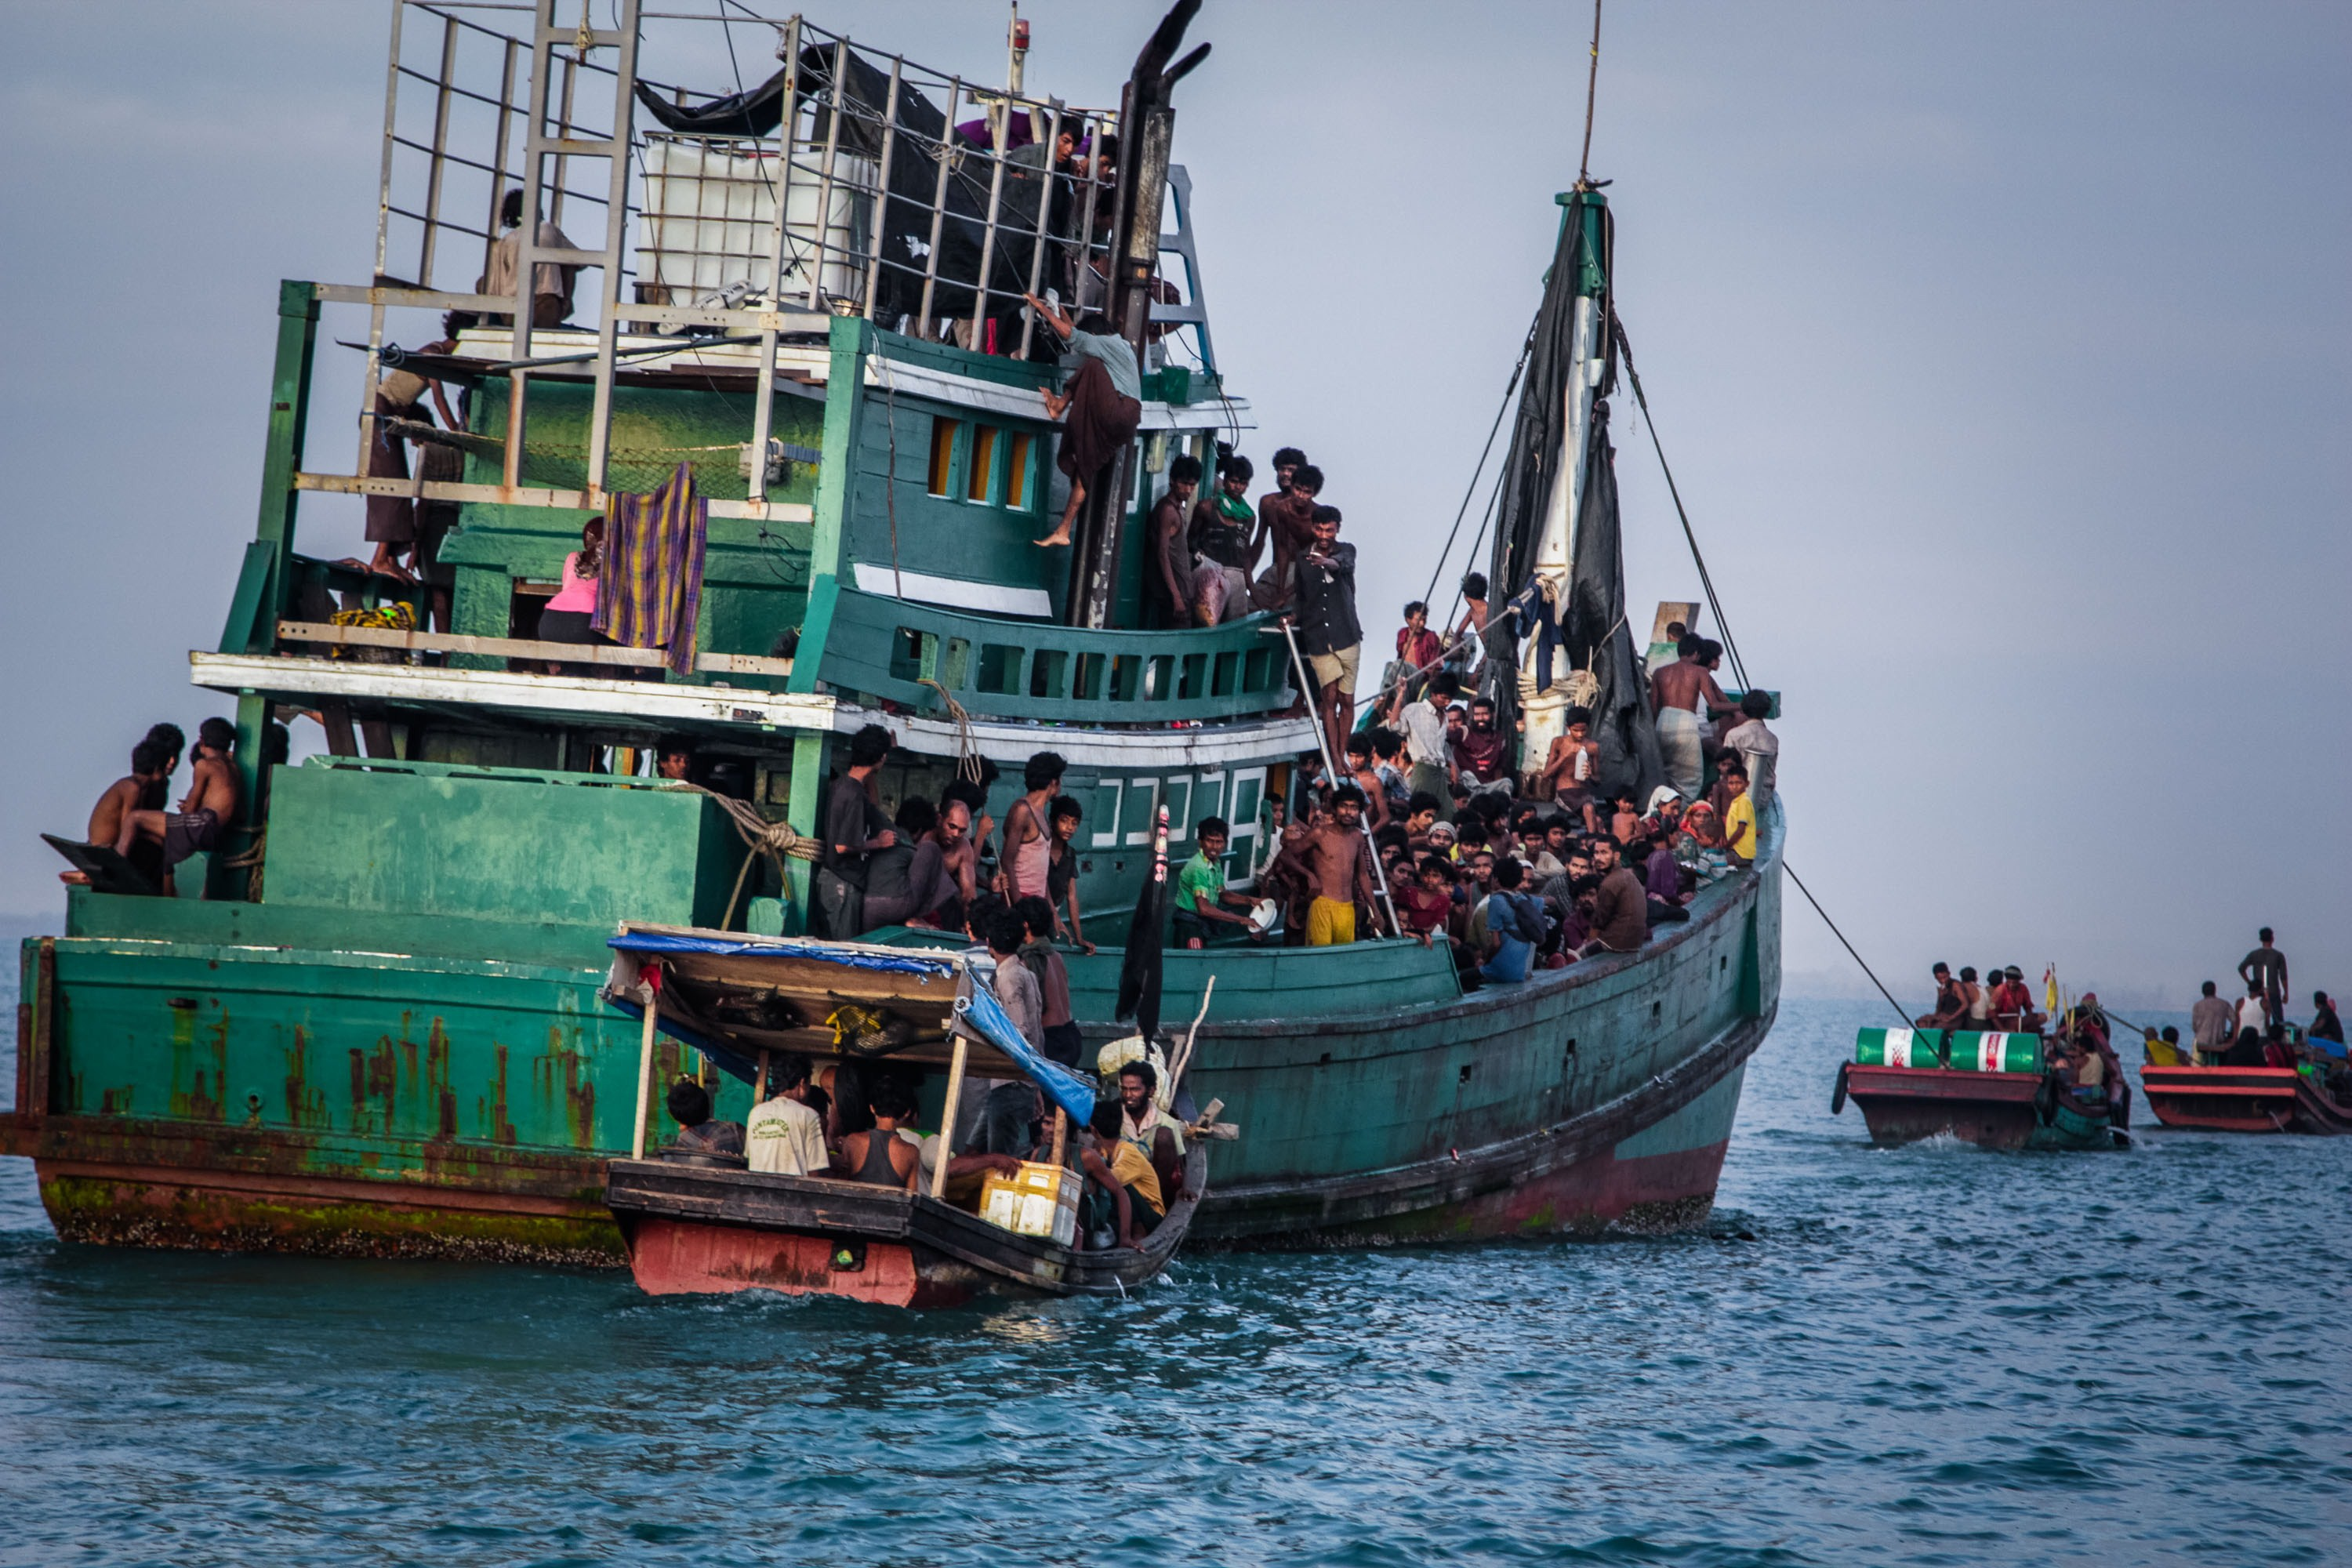 Rohingya migrants on a boat off Indonesia's coast await rescue on May 20. The Muslim Rohingya minority group is fleeing persecution in Burma. (JANUAR/AFP/Getty Images)